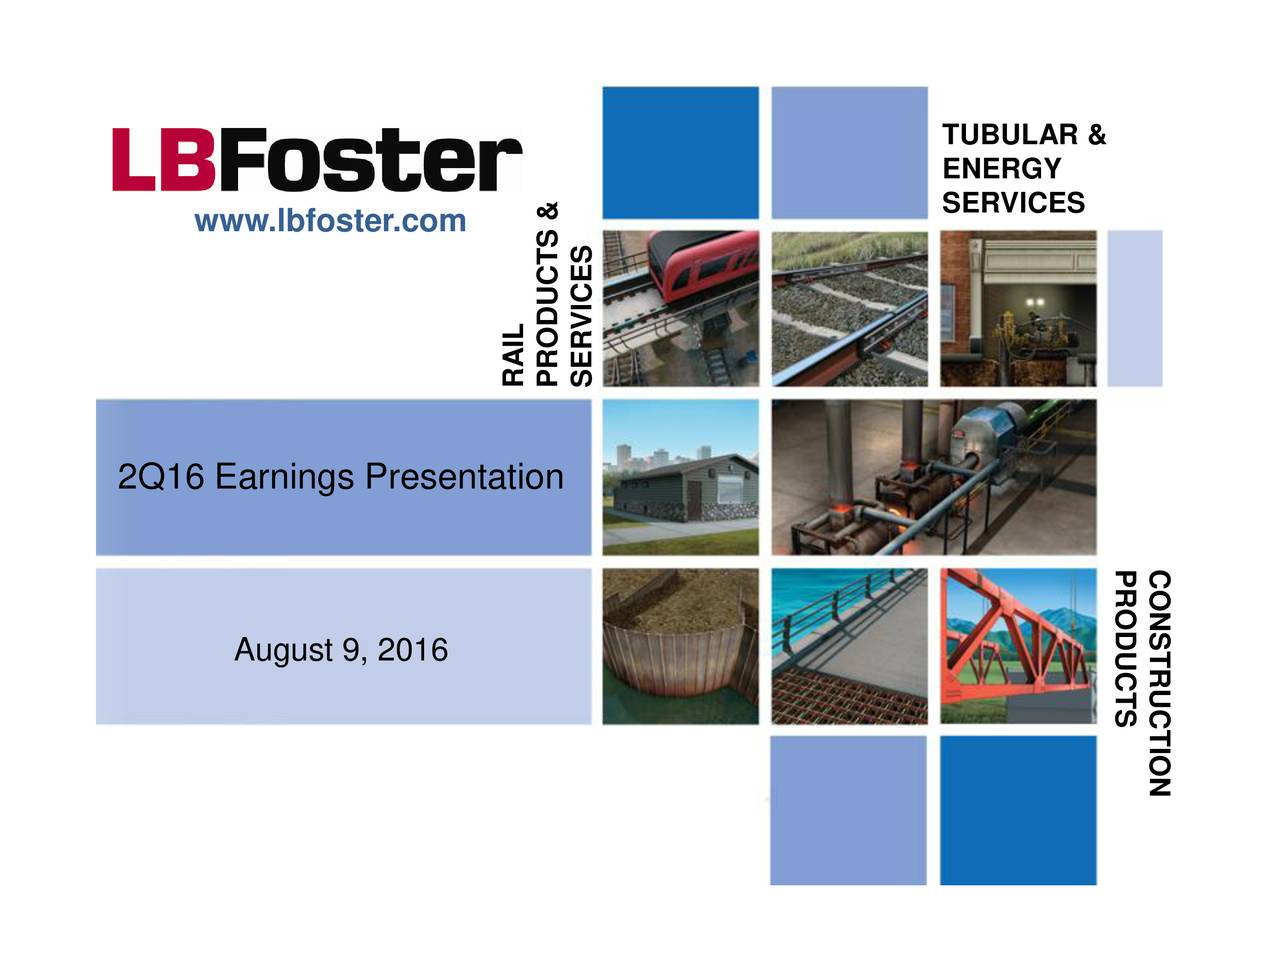 ENERGY www.lbfoster.com SERVICES RAPRSERVCTSS& 2Q16 Earnings Presentation PRCODUCTSUCTION August 9, 2016